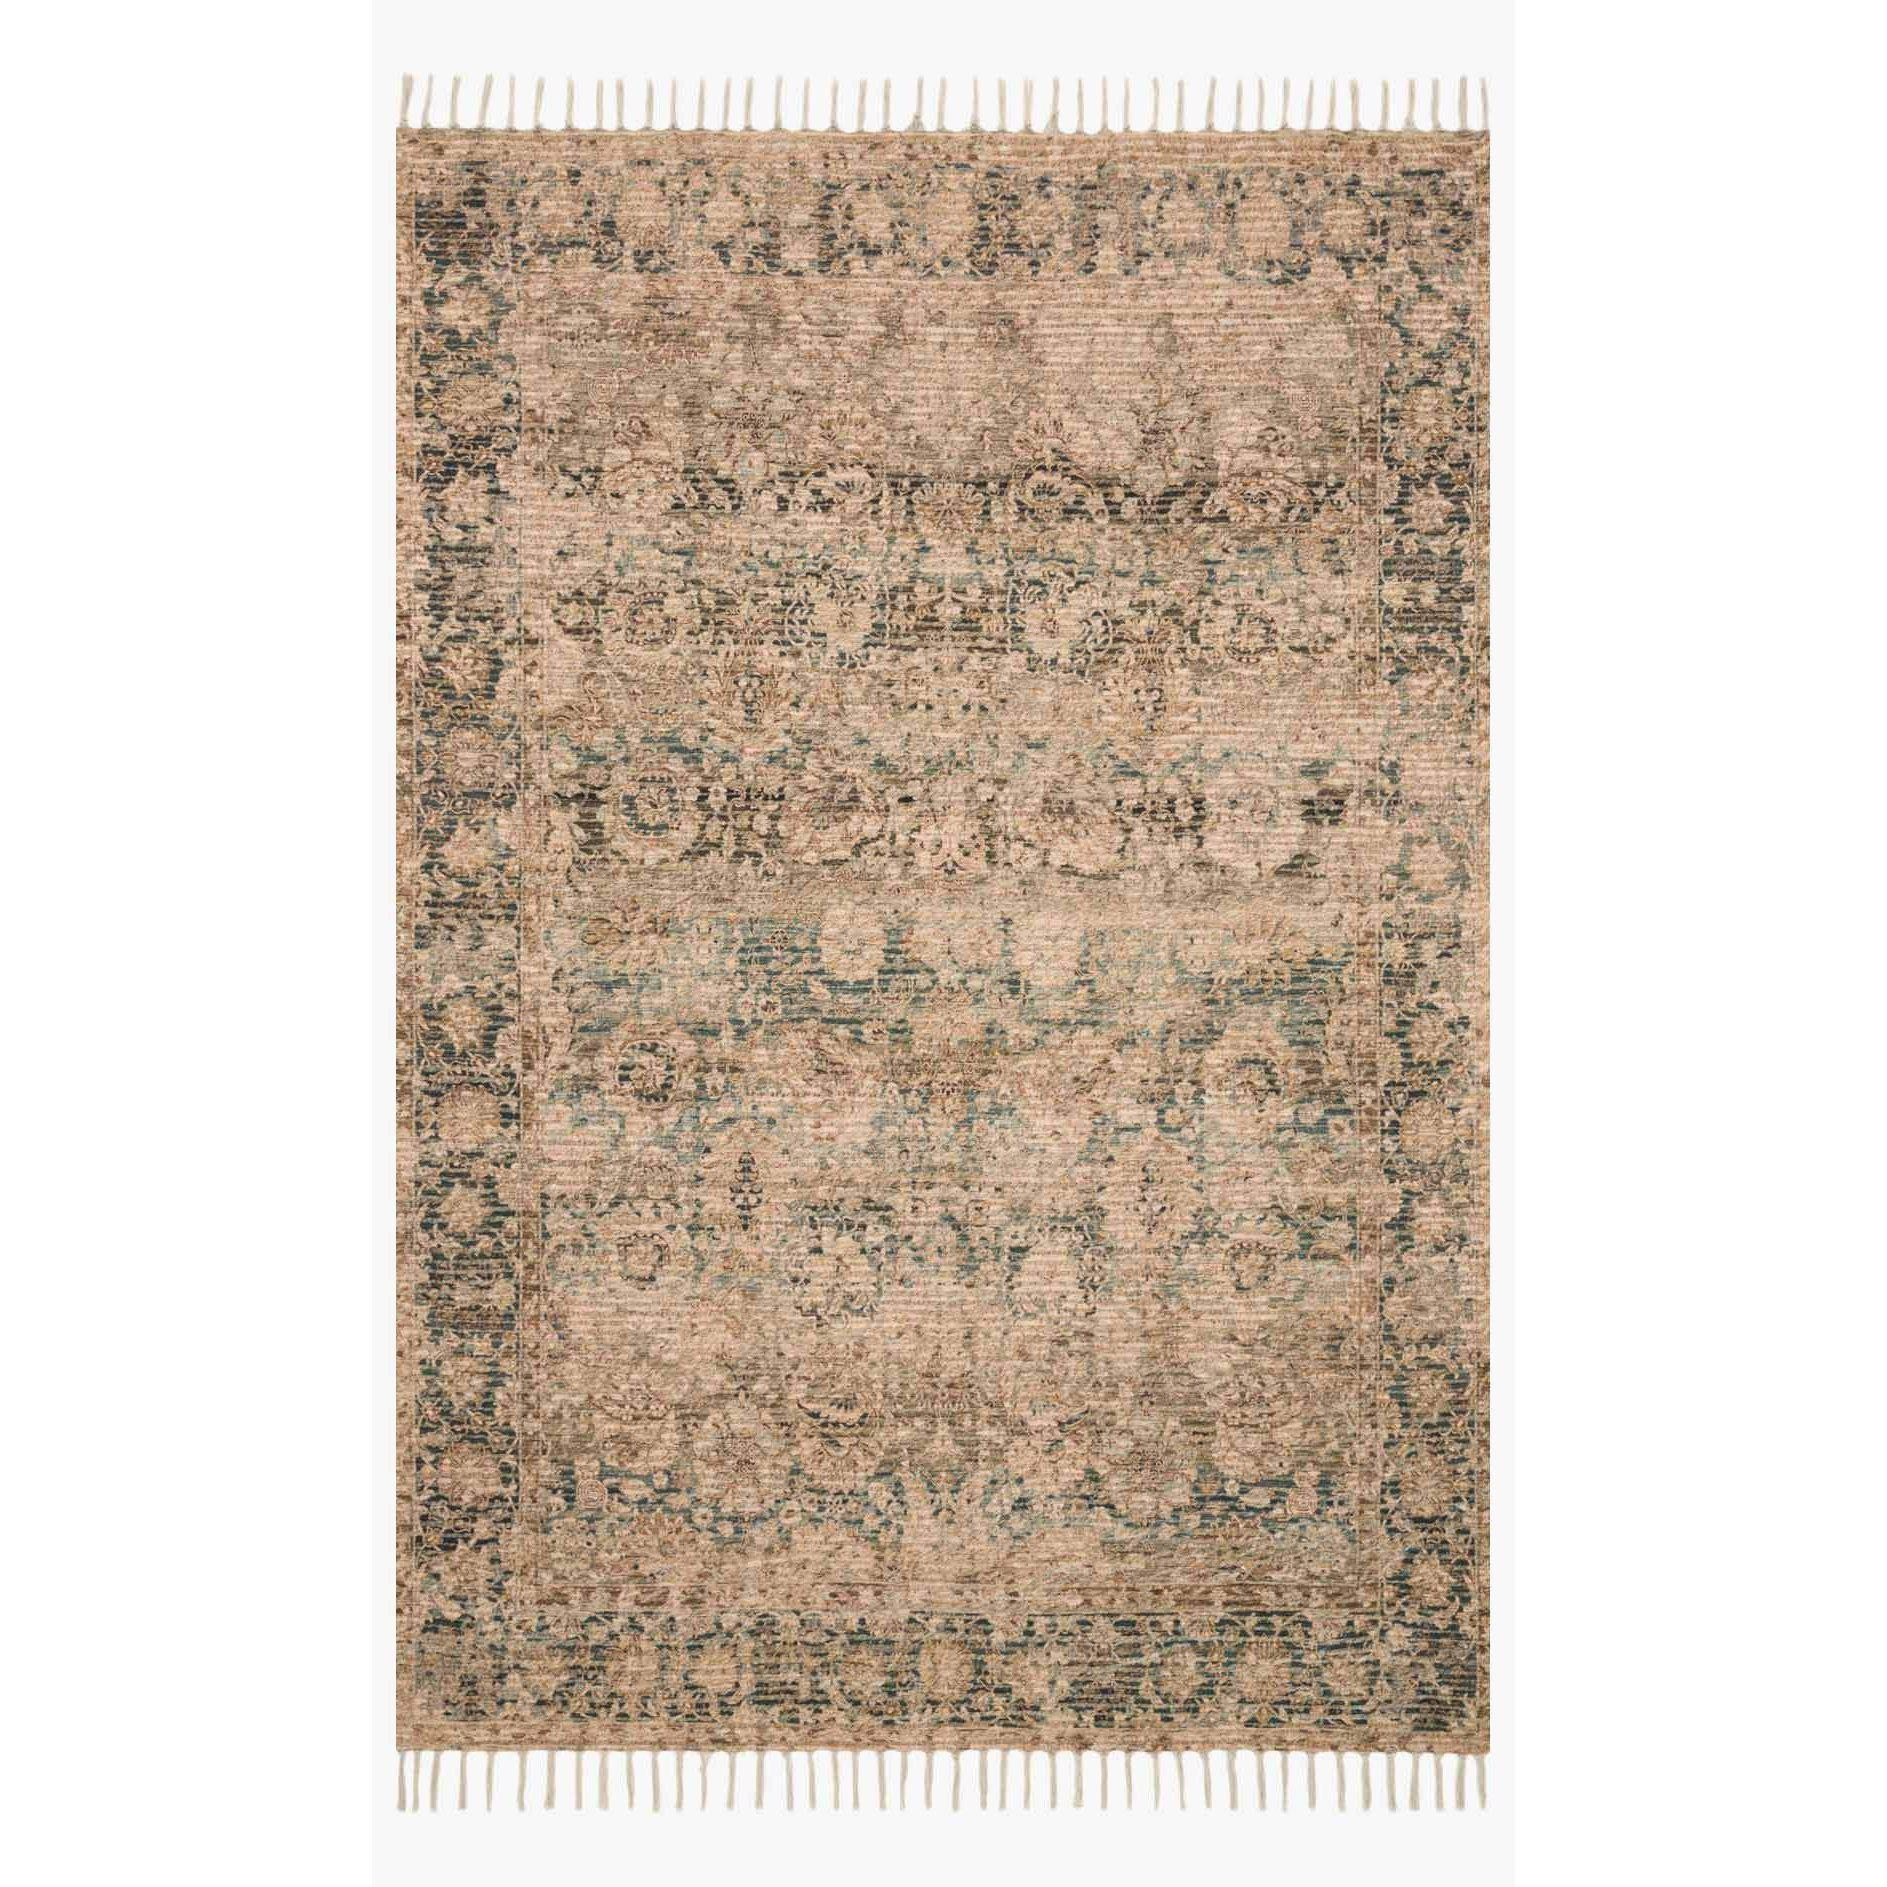 Justina Blakeney Rugs - Cornelia - Cor-01 Natural/Teal-Loloi Rugs-Blue Hand Home